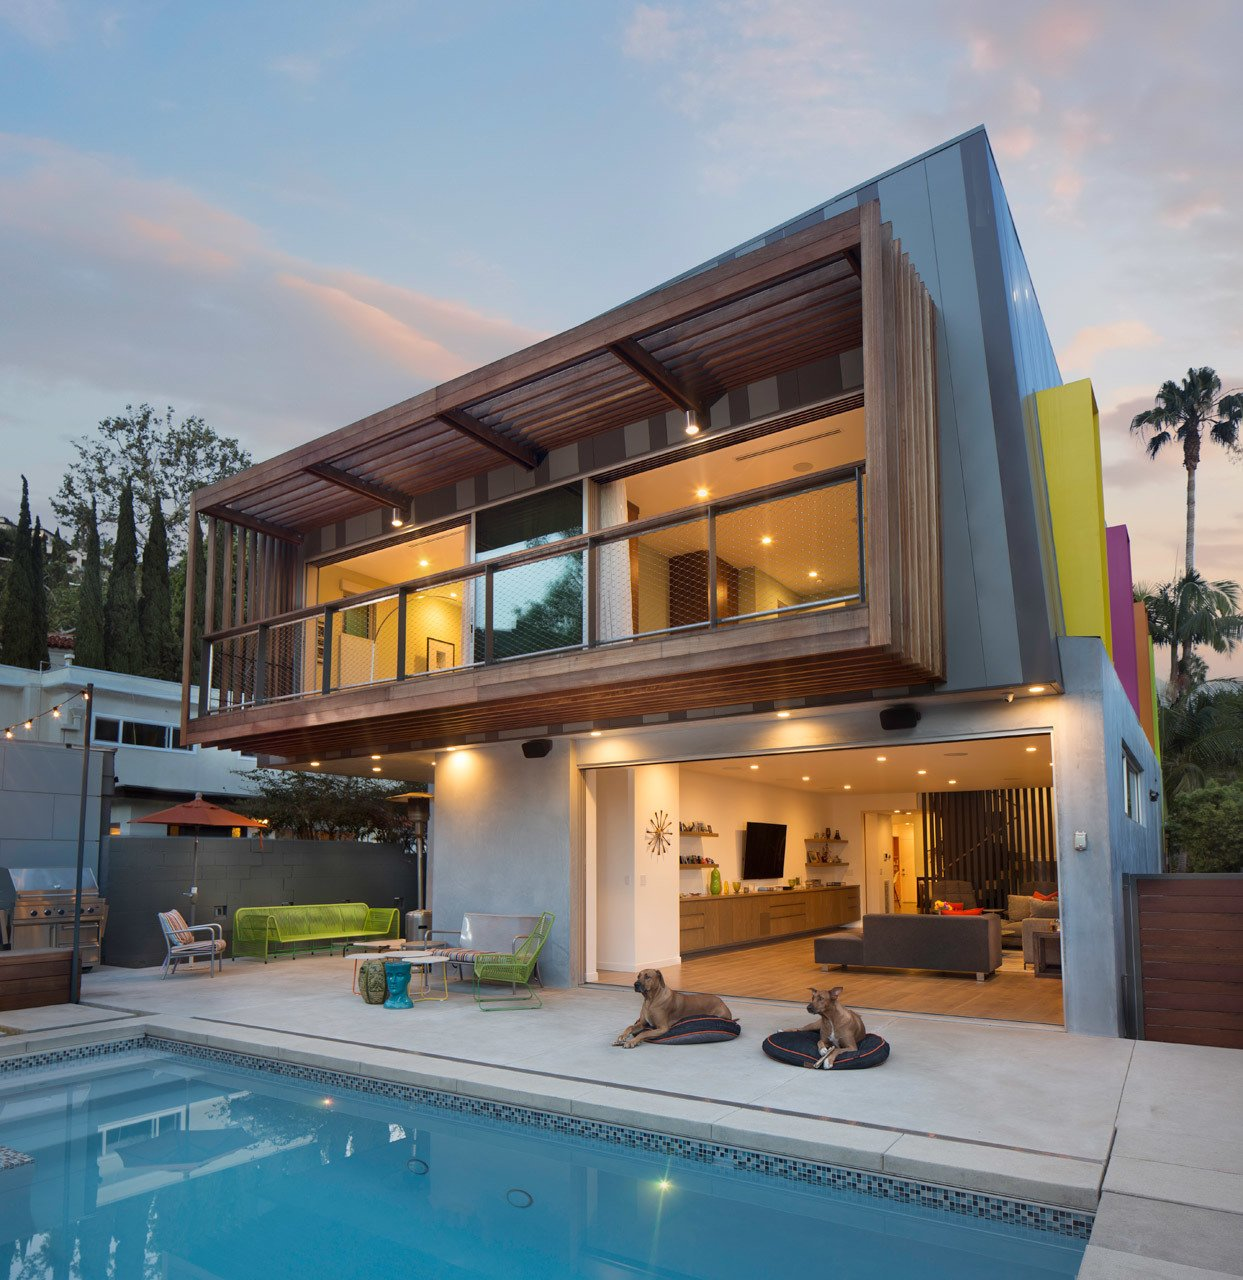 Los Angeles Residence